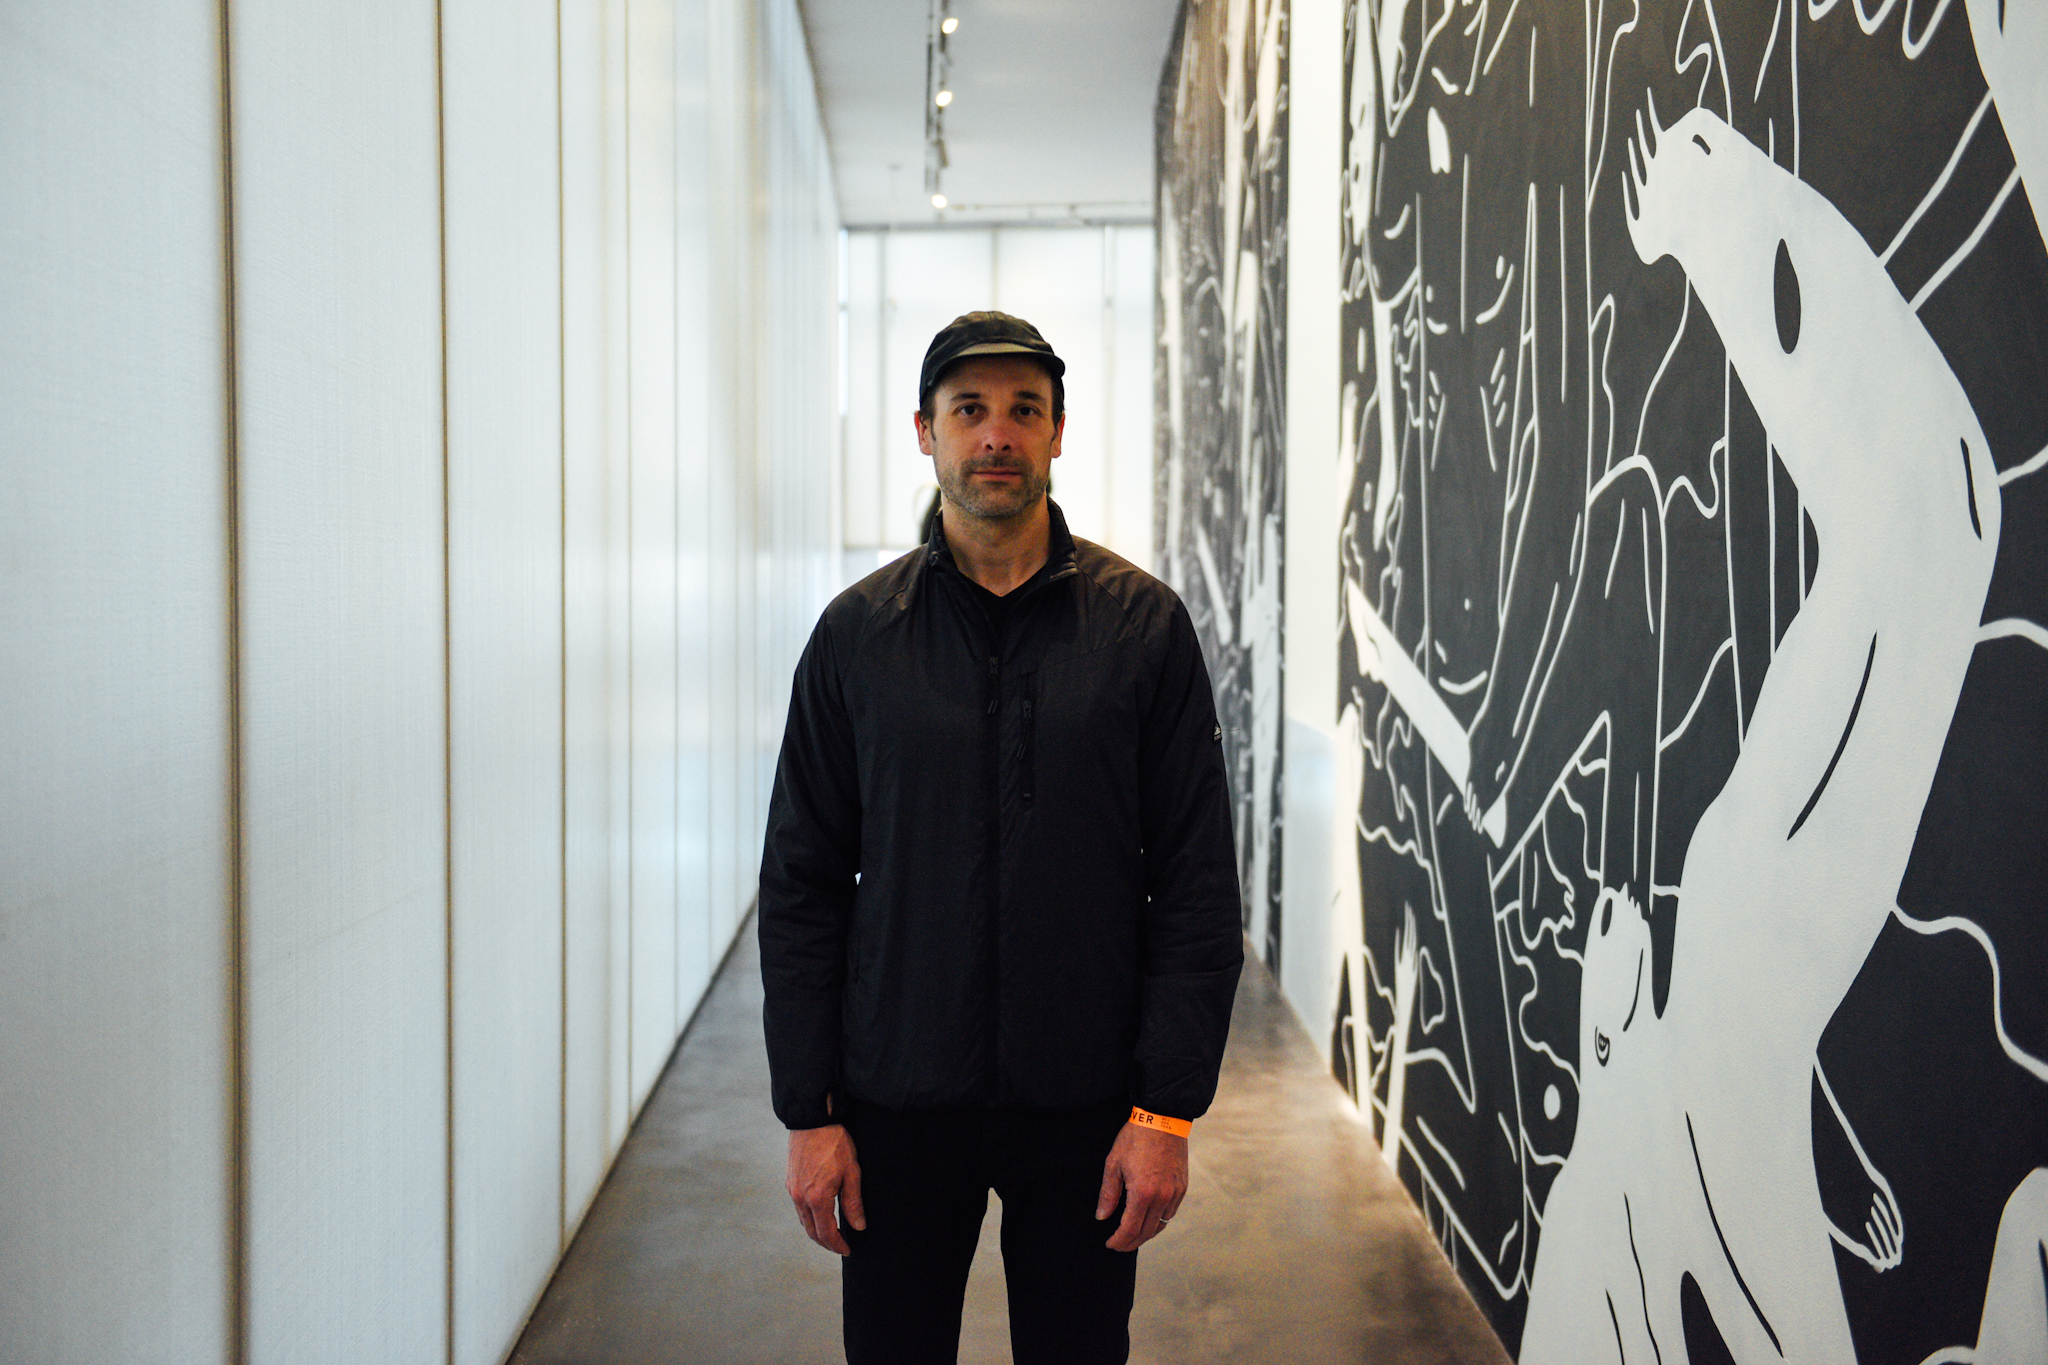 03162018_bruce_mca portugal the man cleon peterson_0007.jpg